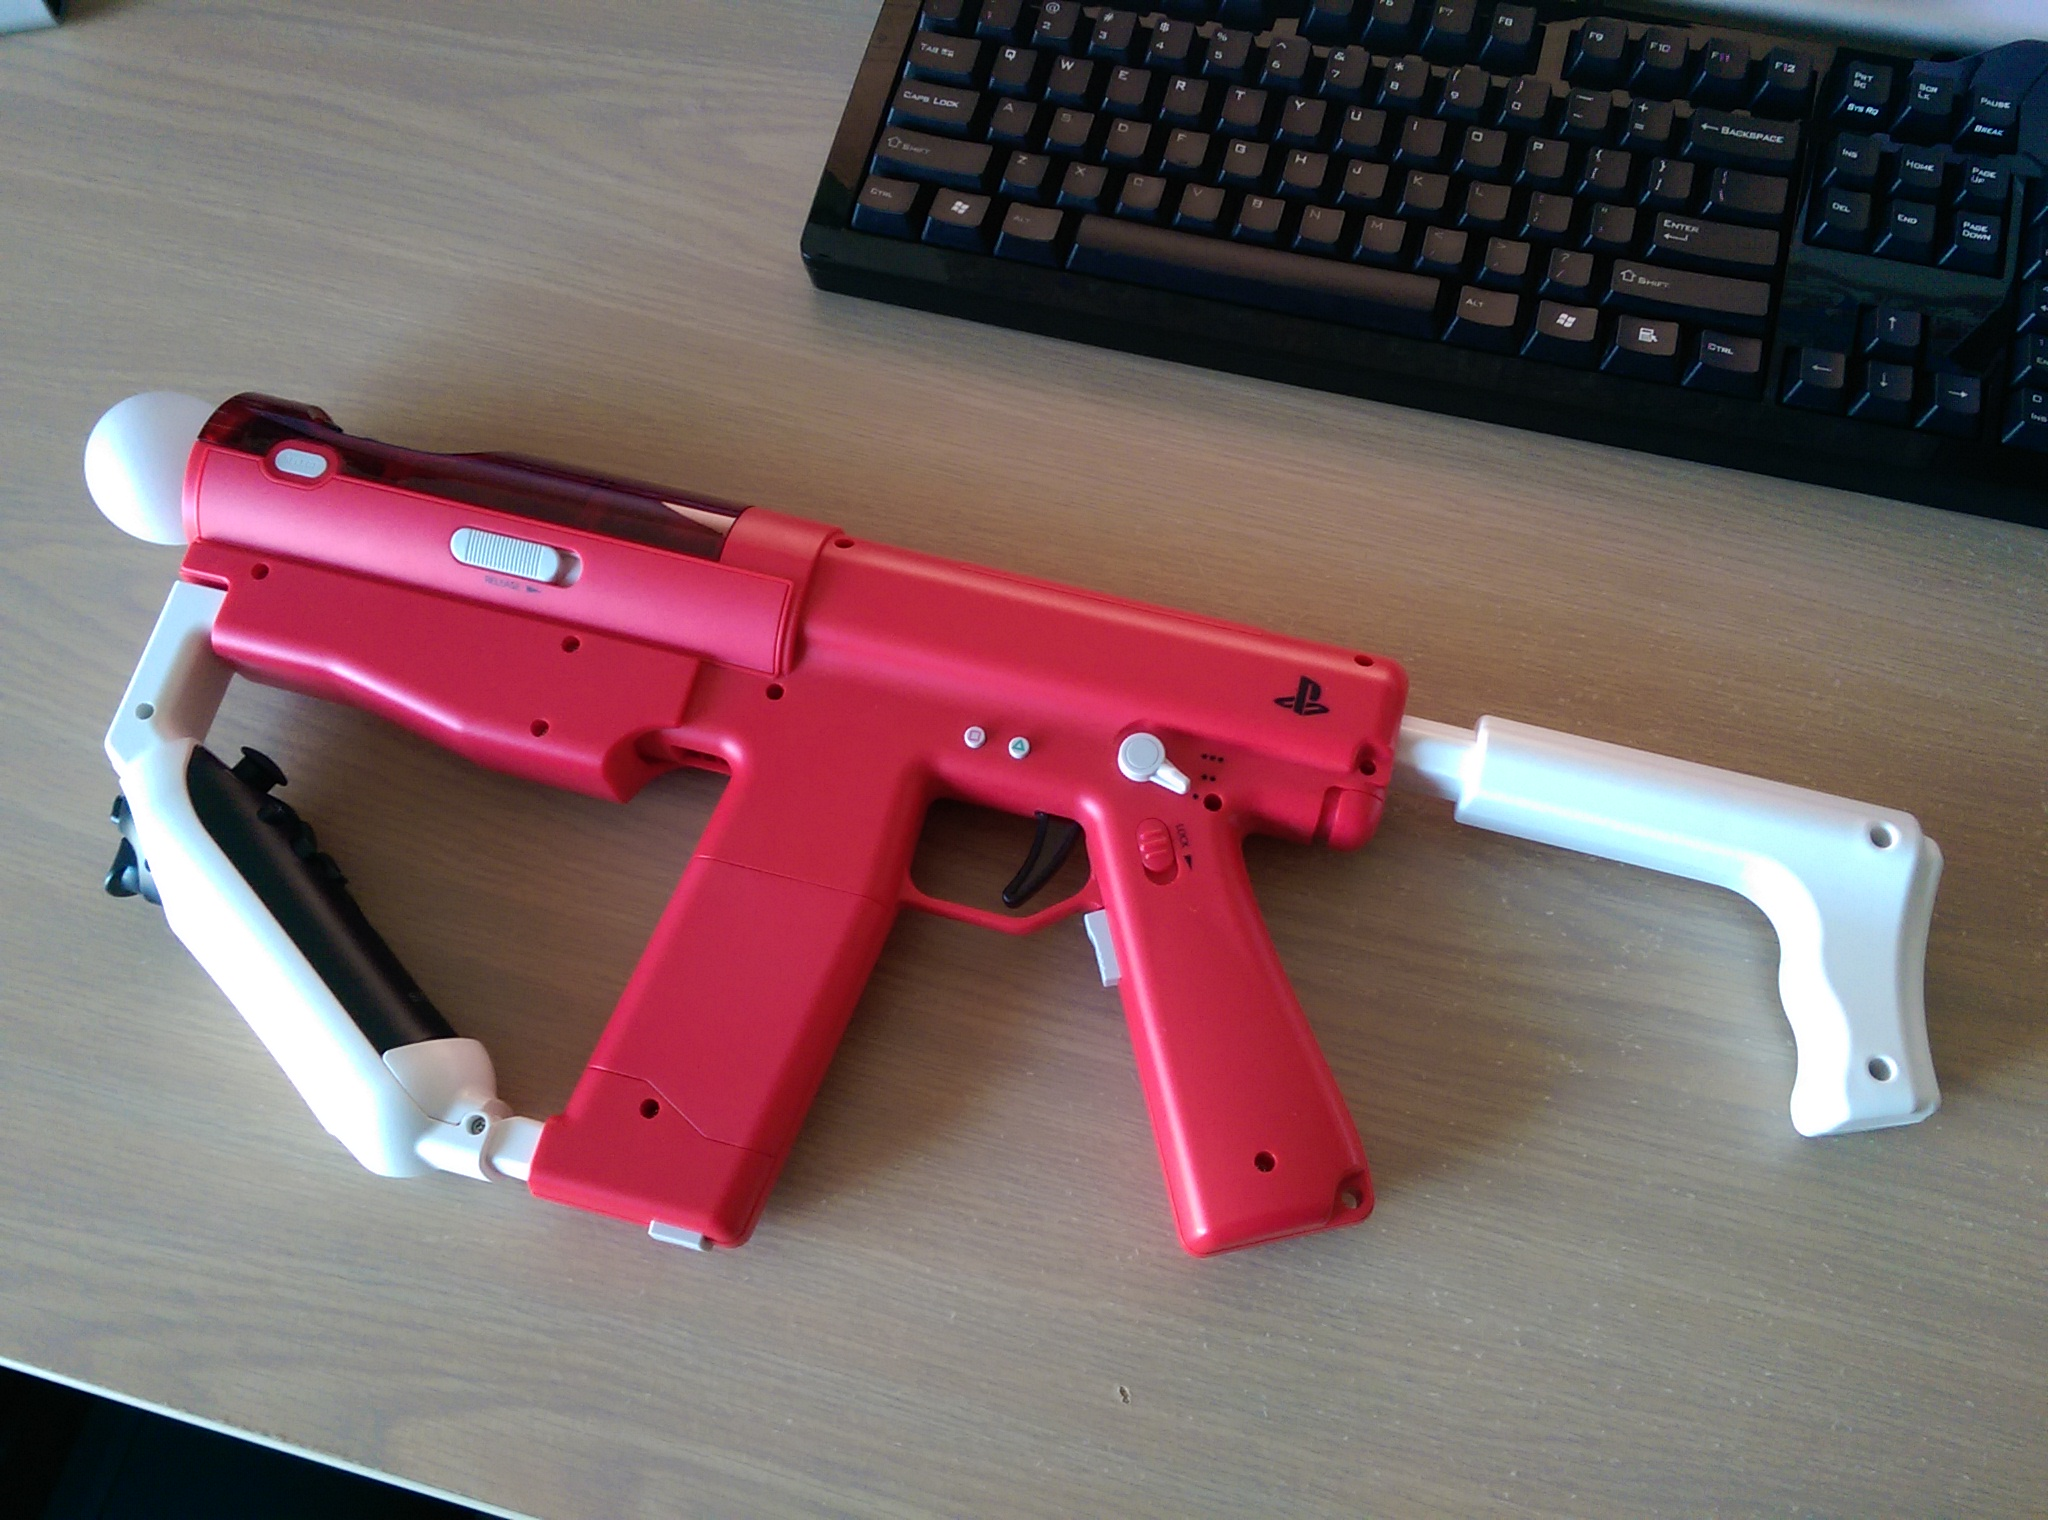 The PlayStation Move SharpShooter accessory.